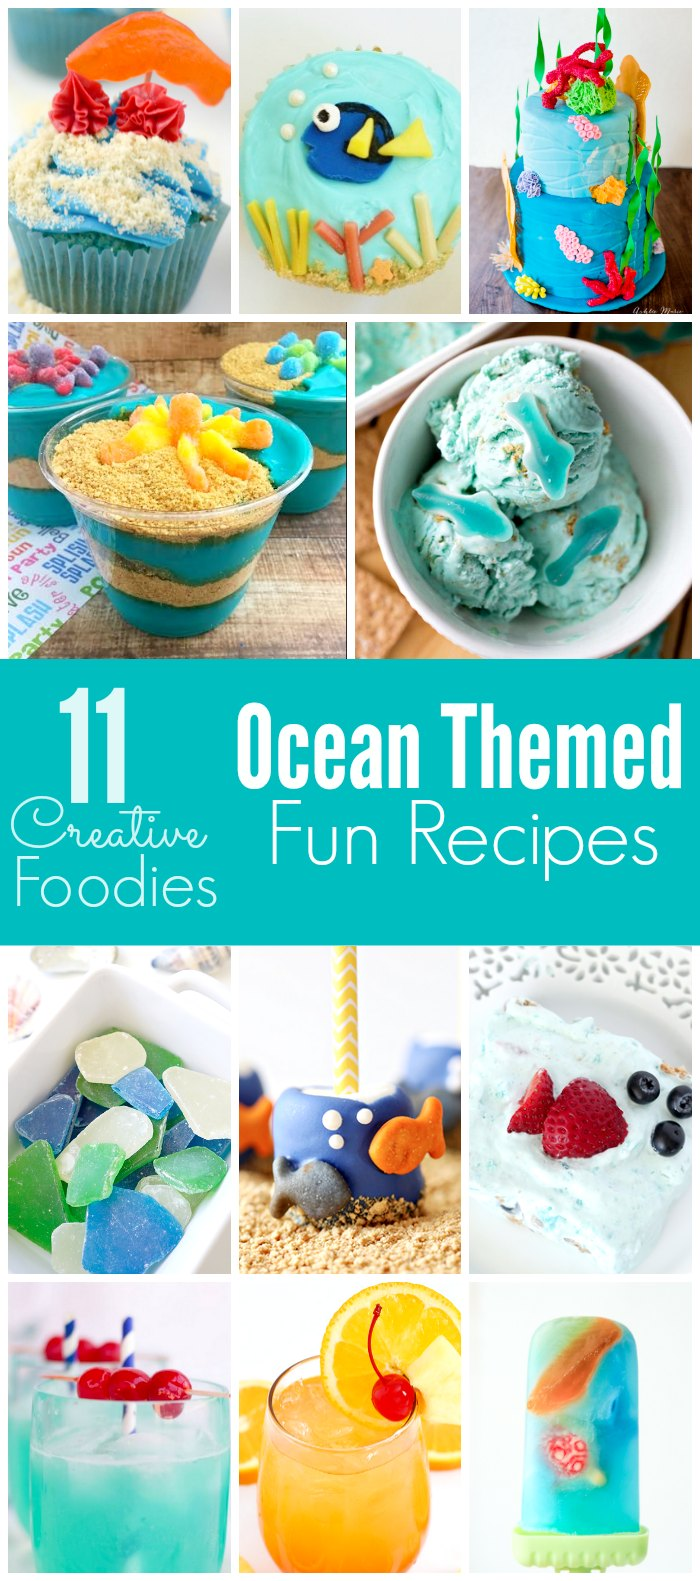 11 adorable Ocean Themed Recipes